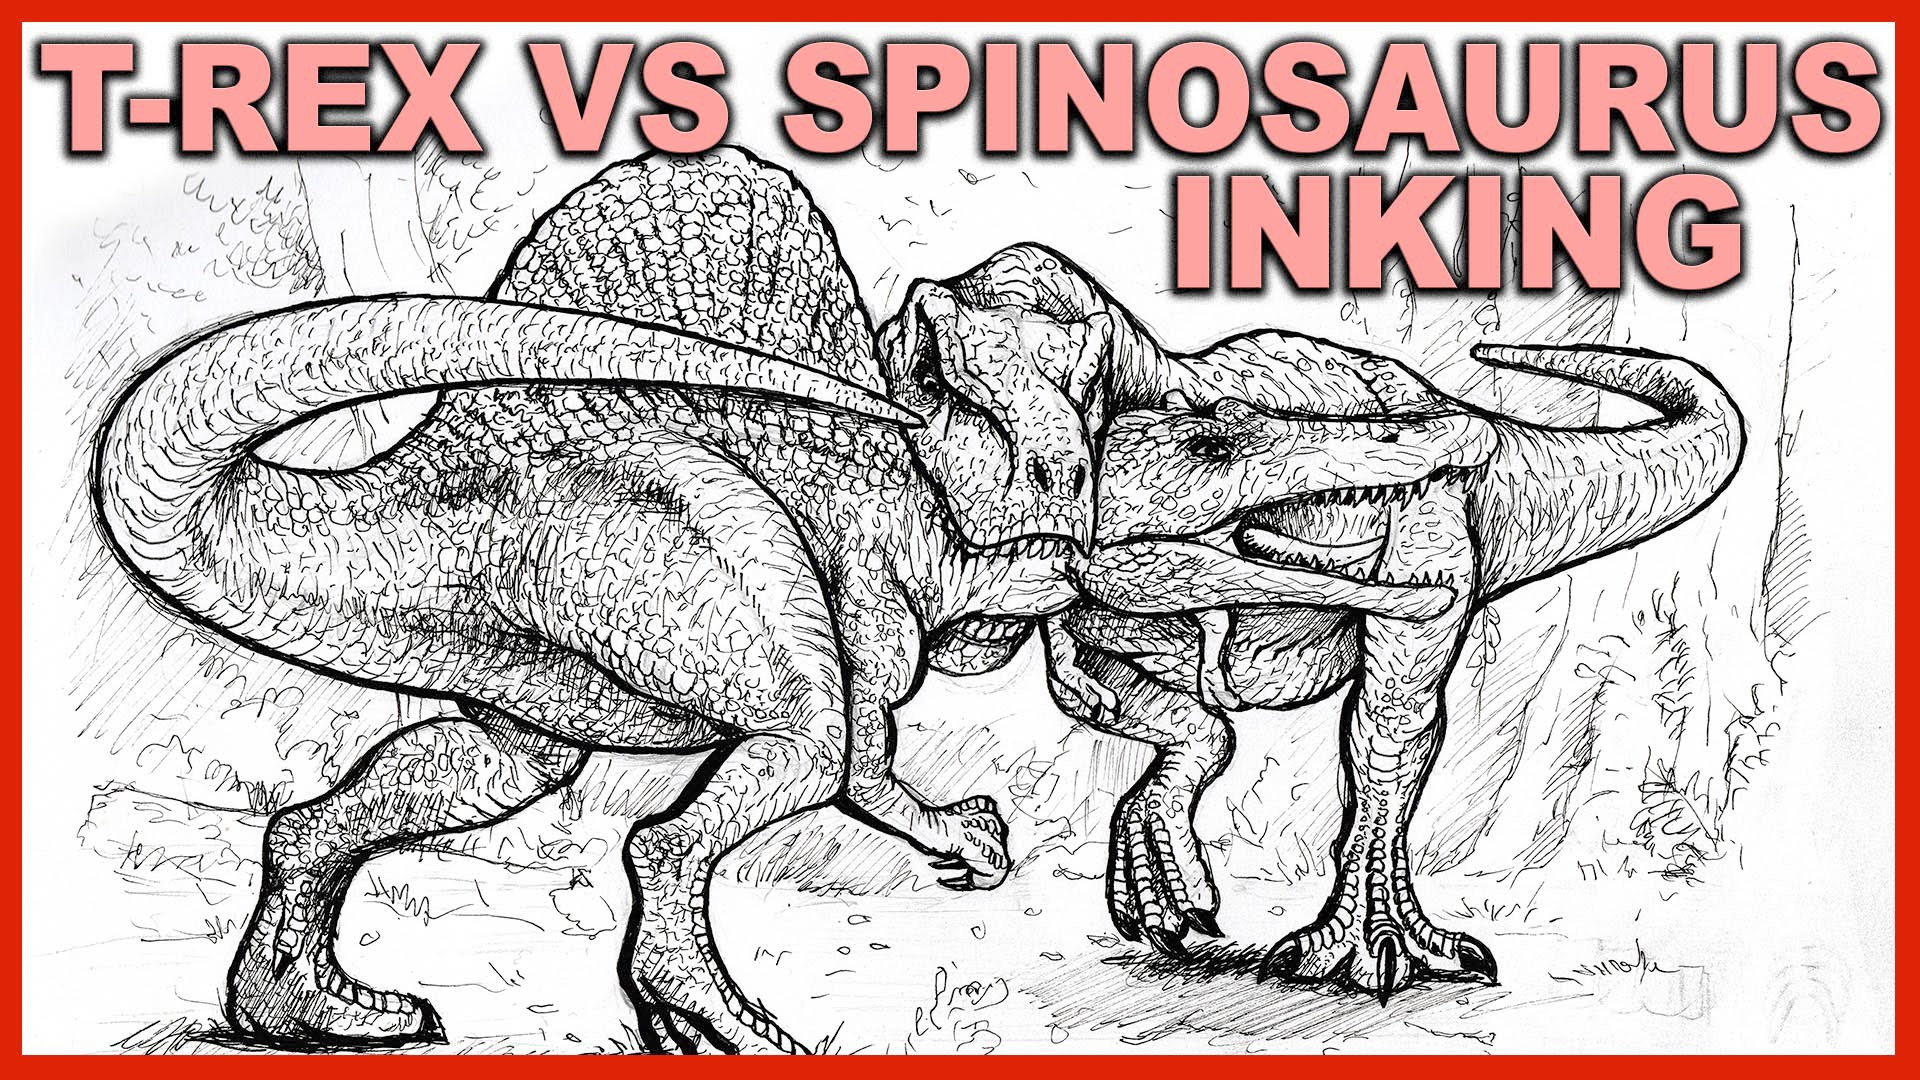 spinosaurus-vs-t-rex-coloring-pages-of-spinosaurus-vs-t-rex-coloring-pages Spinosaurus Vs T-rex Coloring Pages Dinosaurs